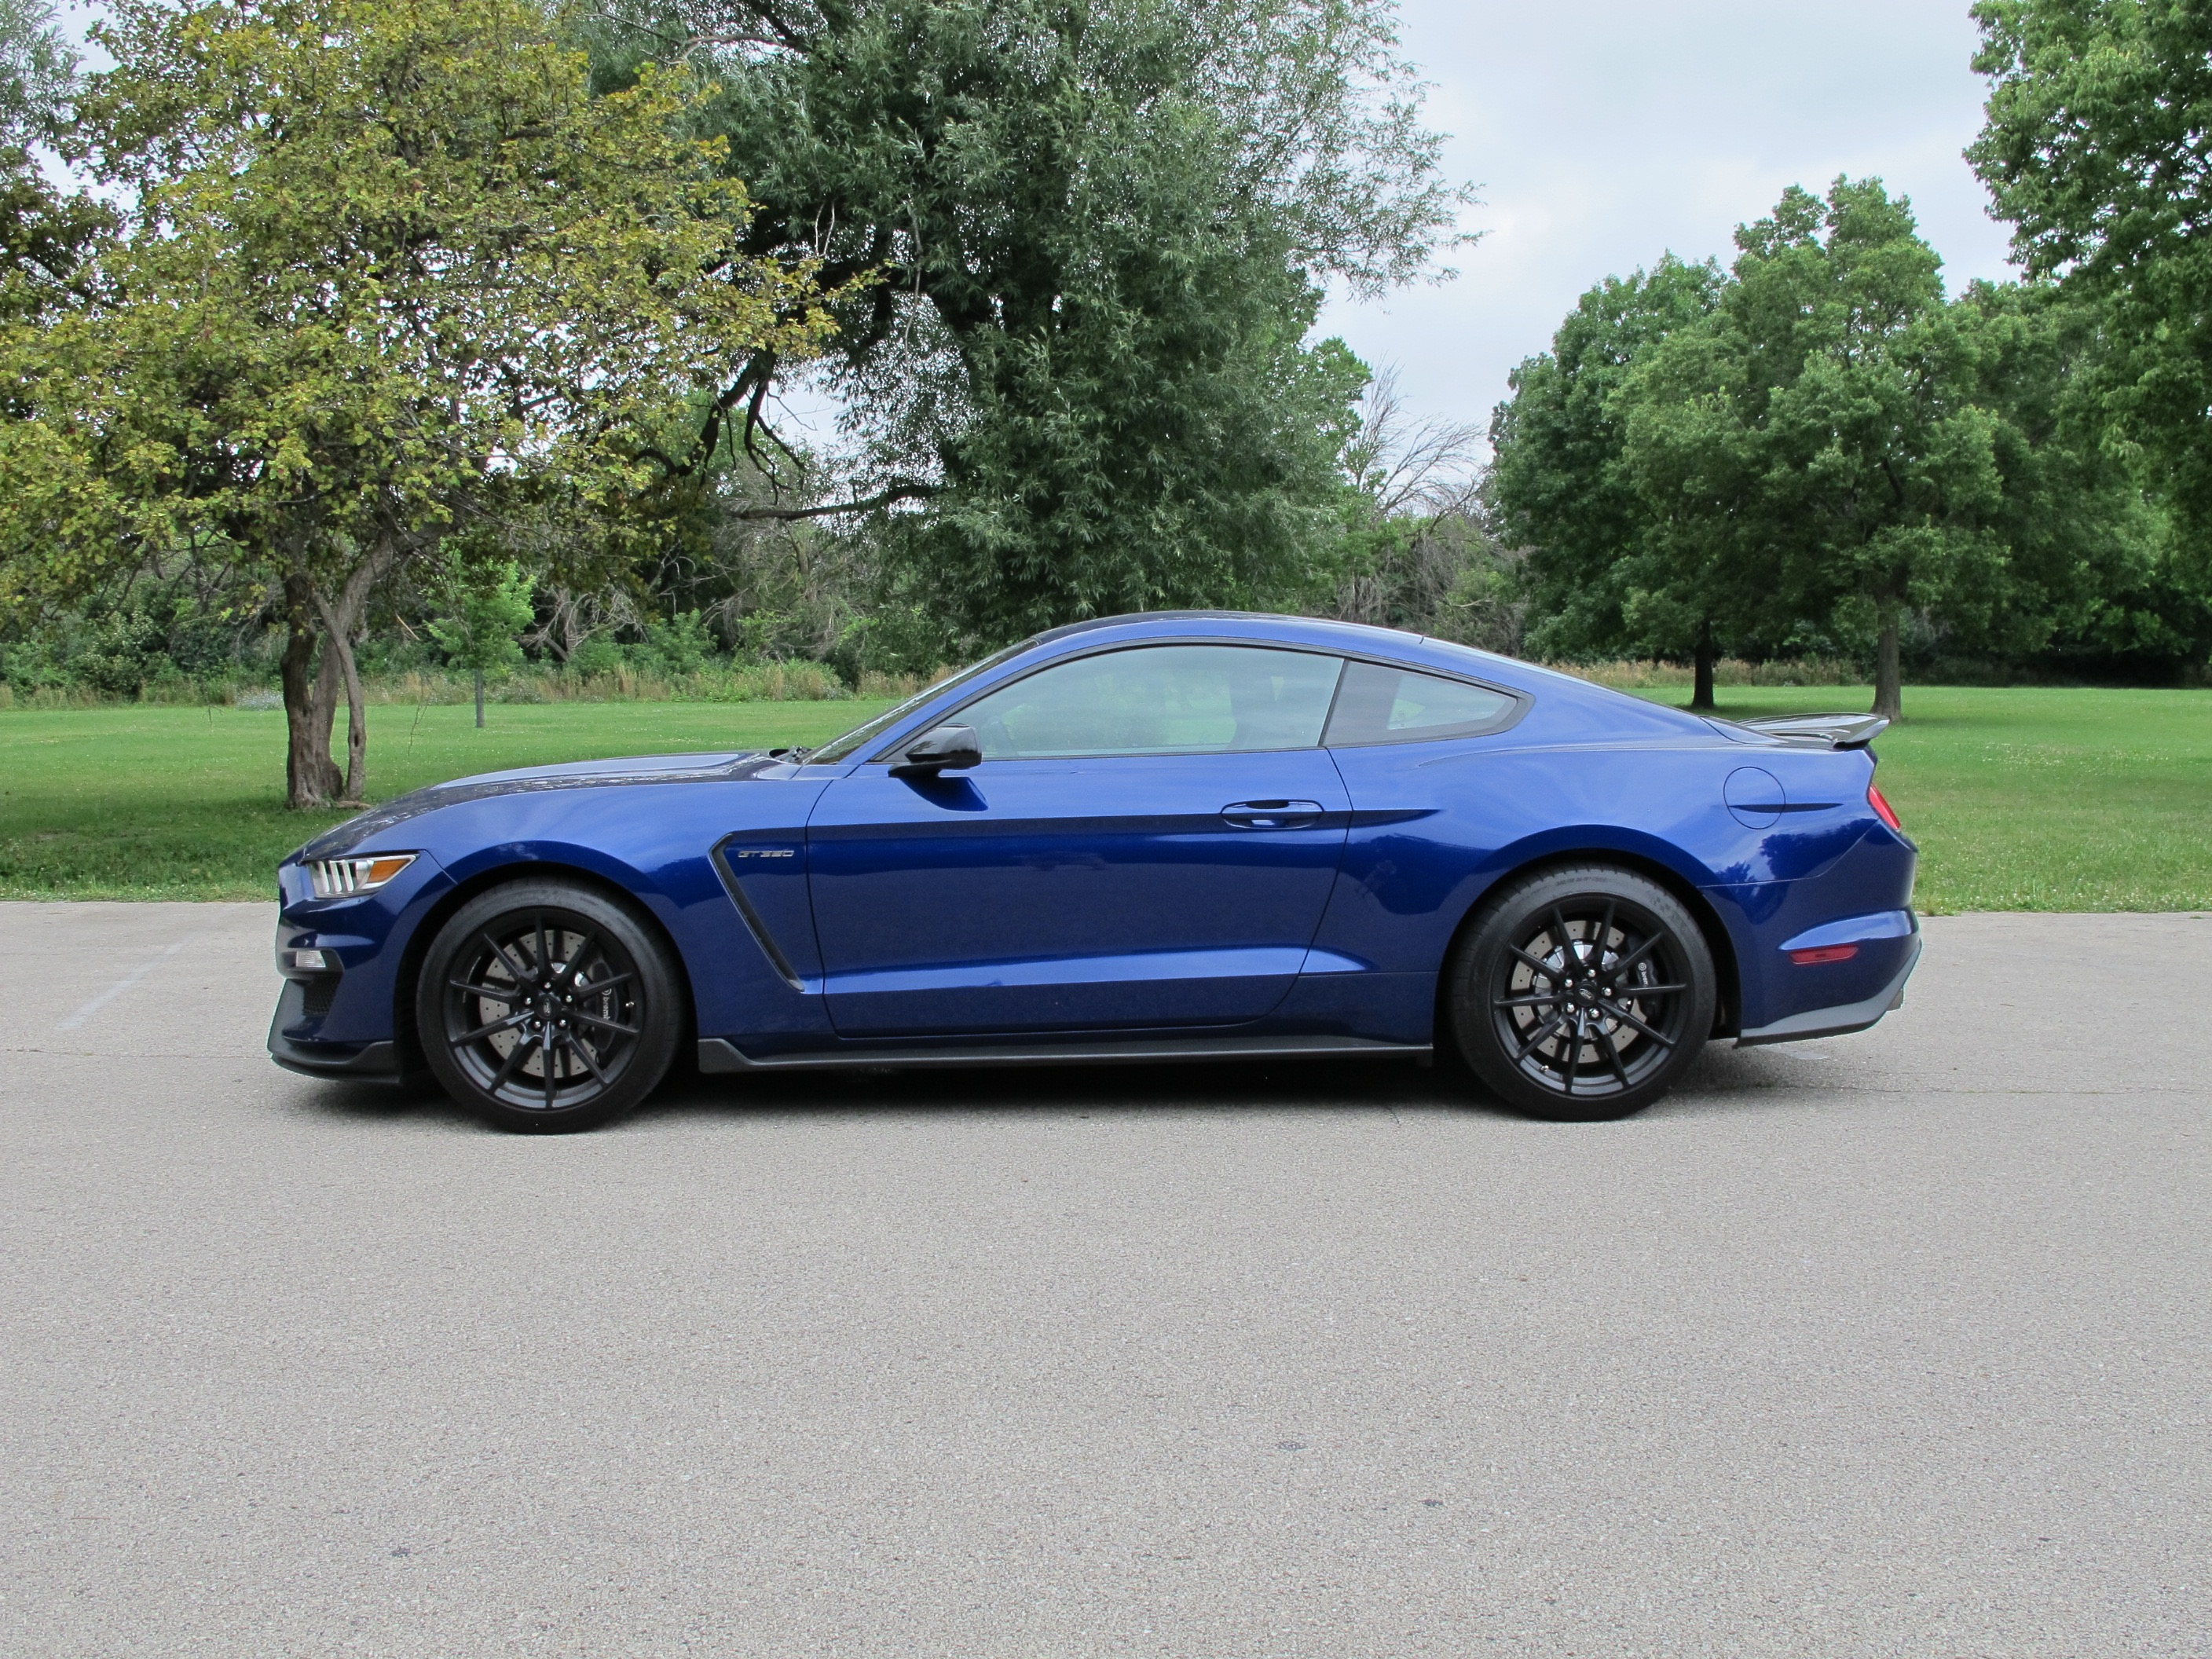 Commuting And The 2016 Ford Shelby Gt350 Mustang Don T Mix Second Drive